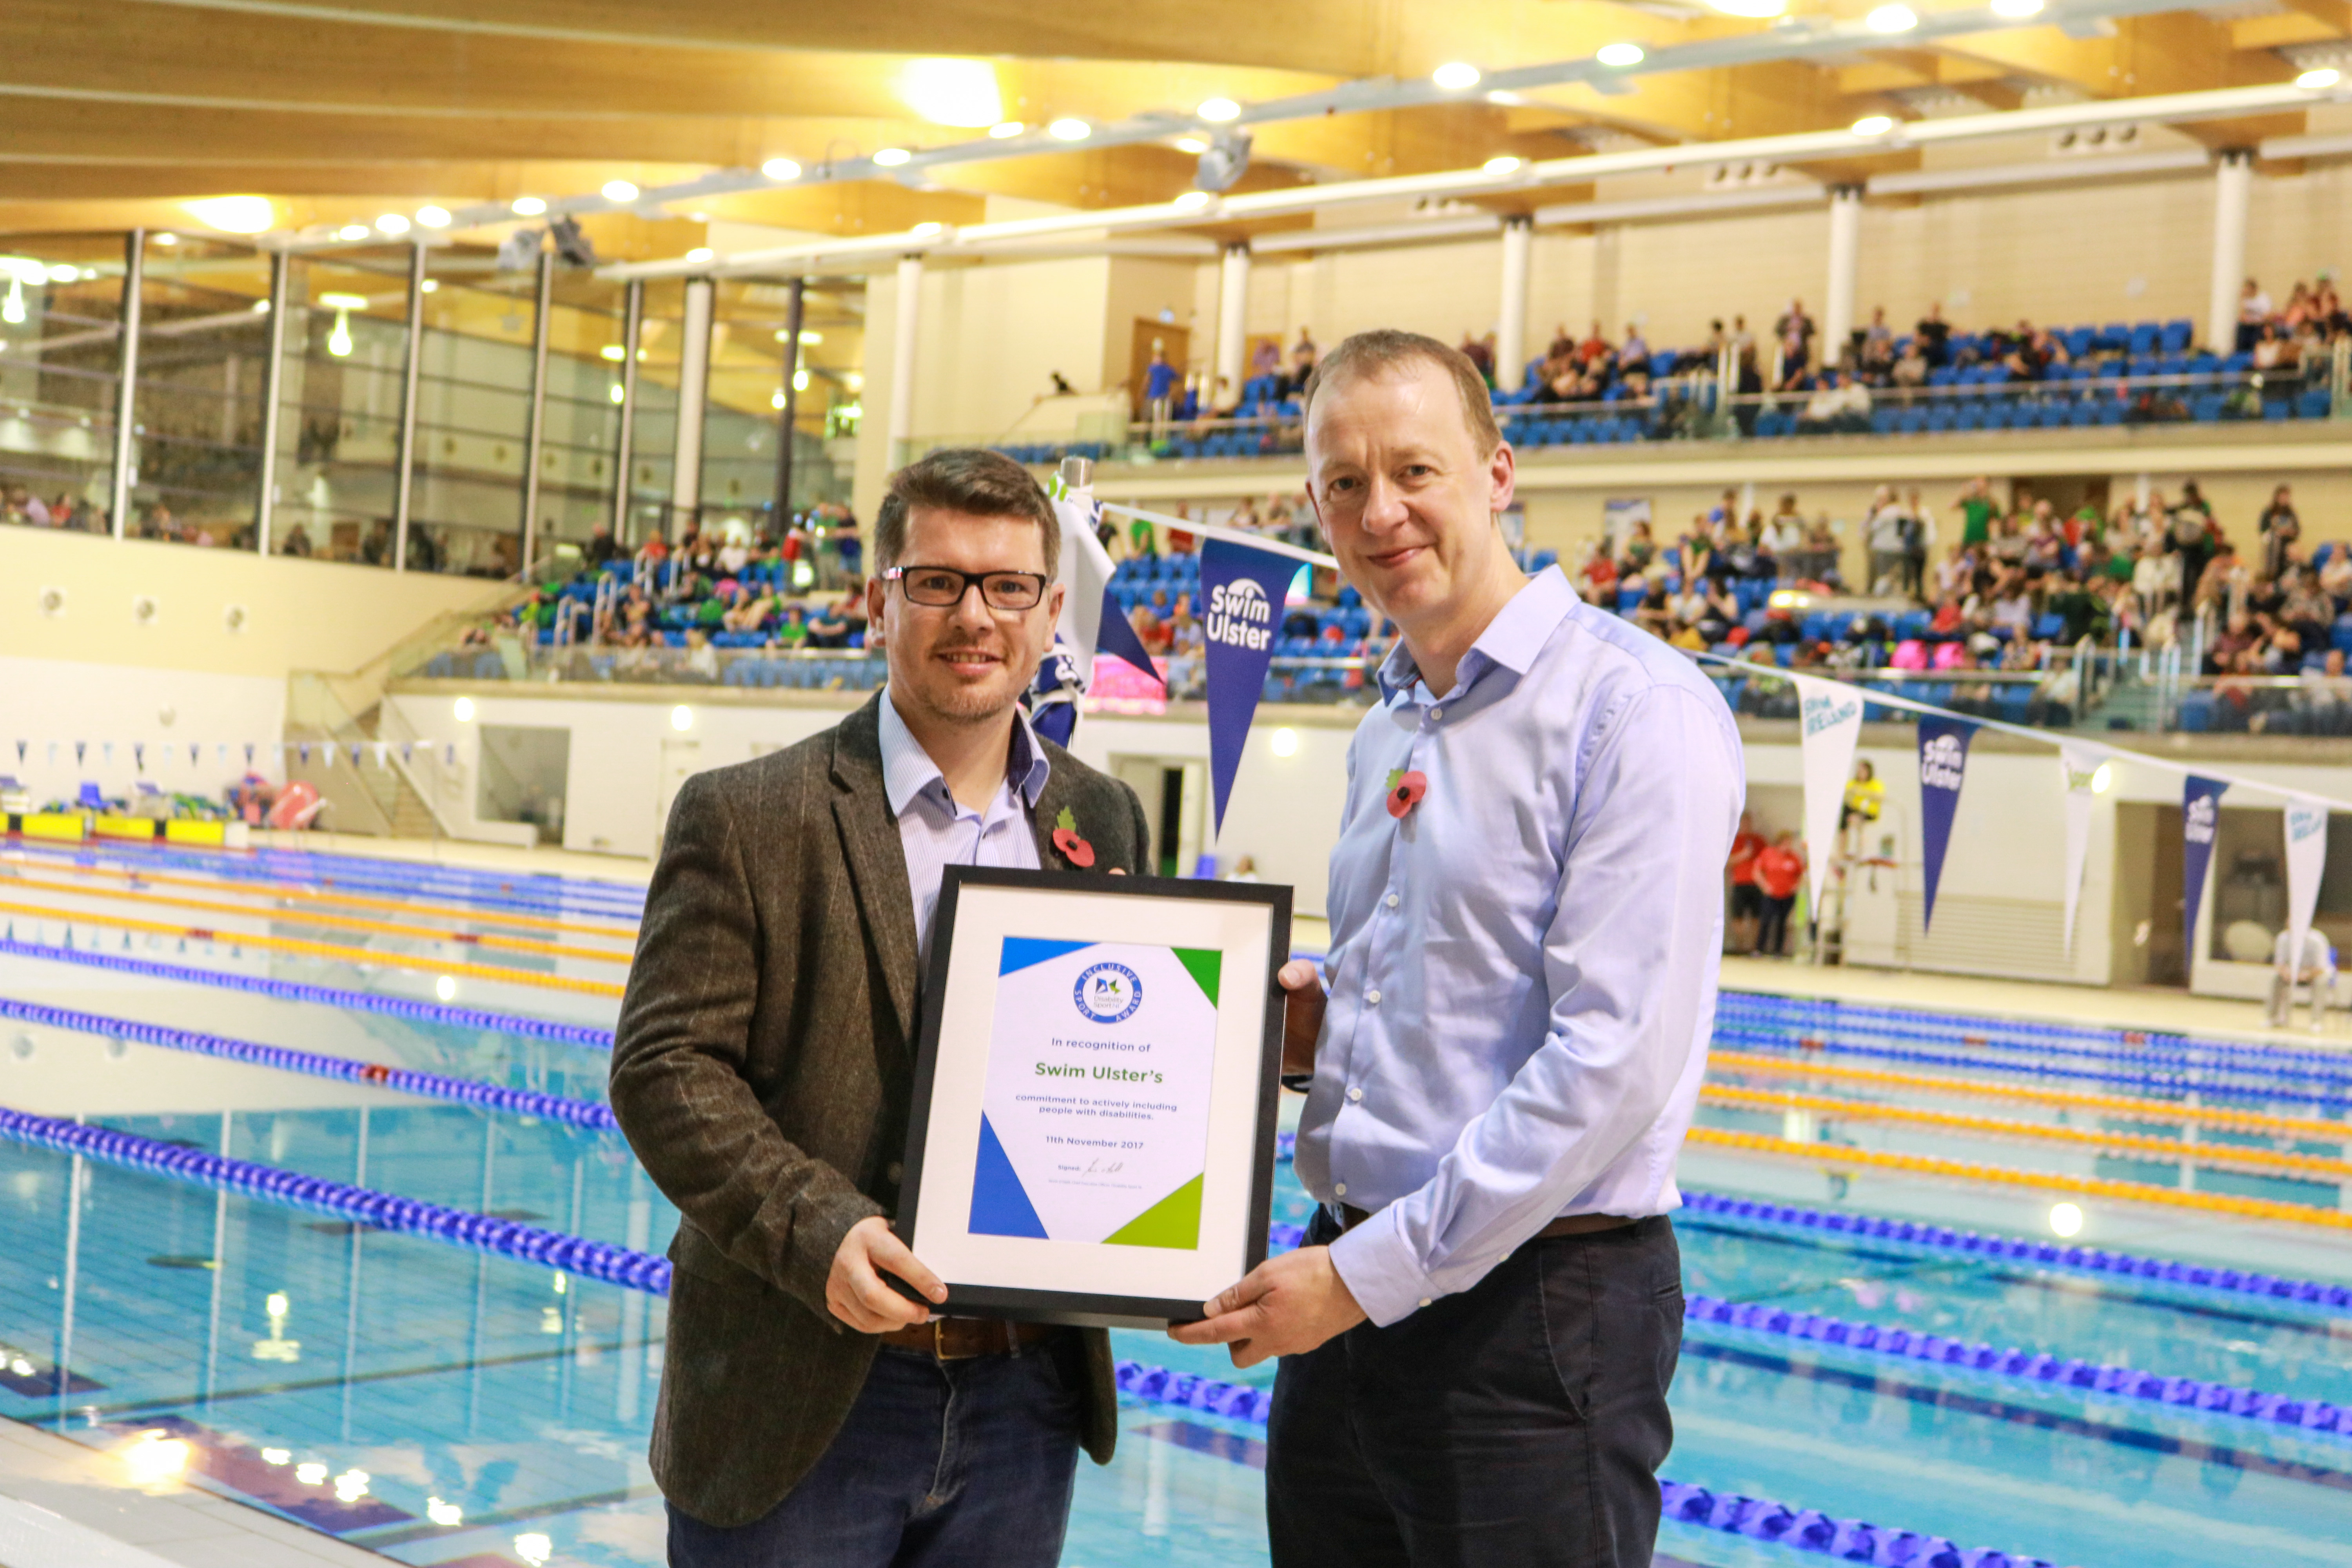 Stephen Cuddy and Kevin O'Neill standing in front of a swimming pool